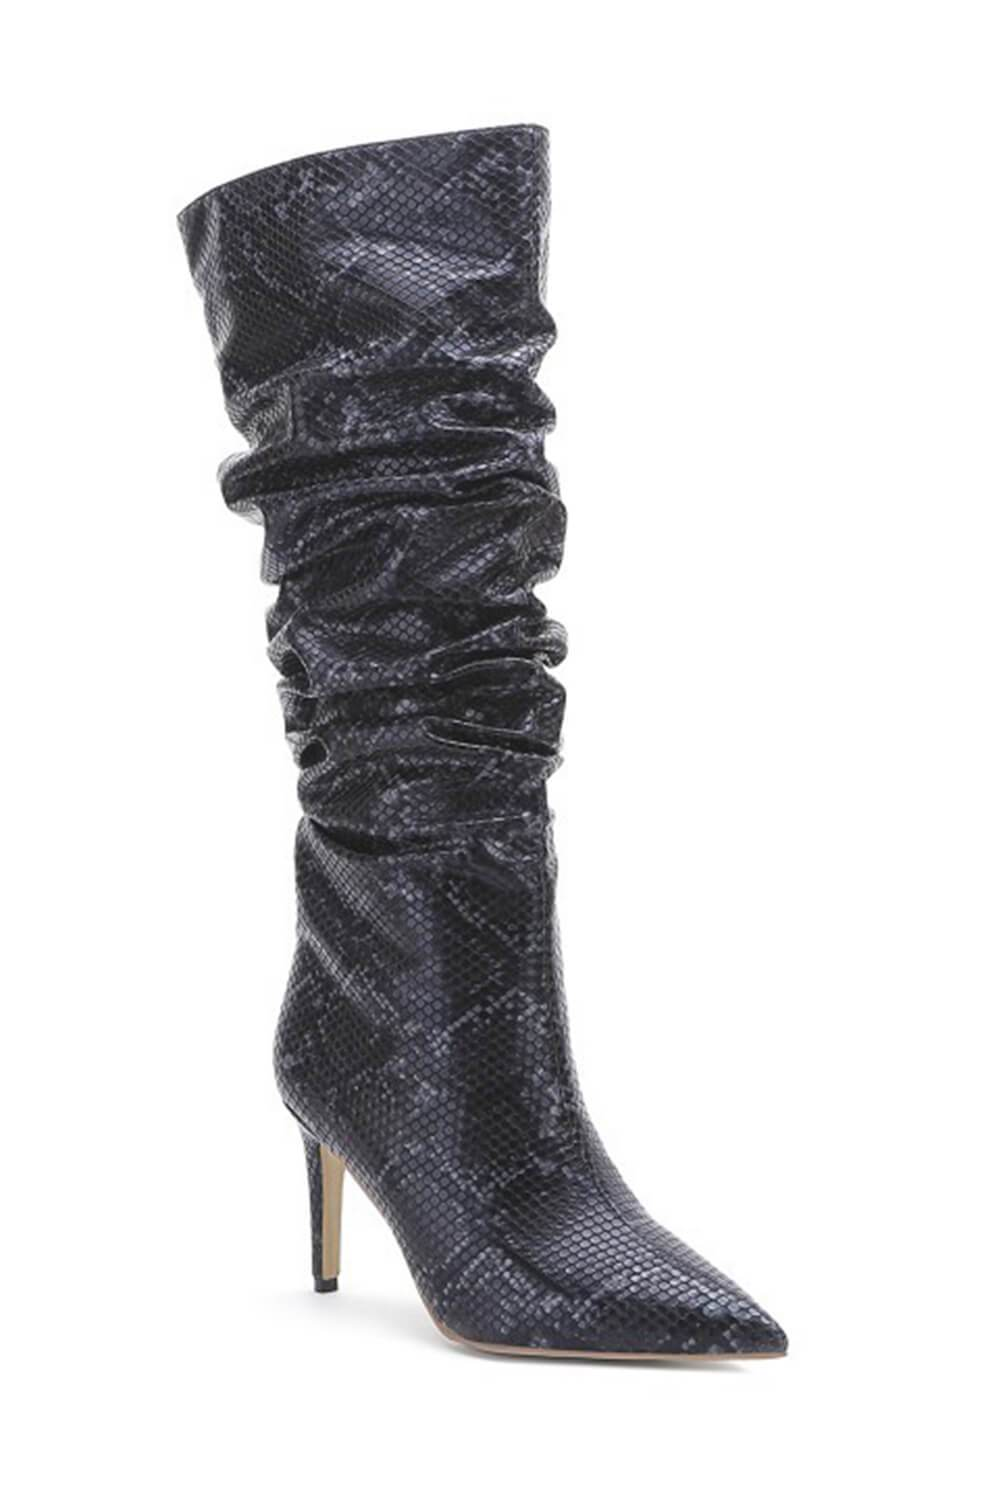 Black Snakeskin Ruched Knee High Stiletto Boots (4307980877883)